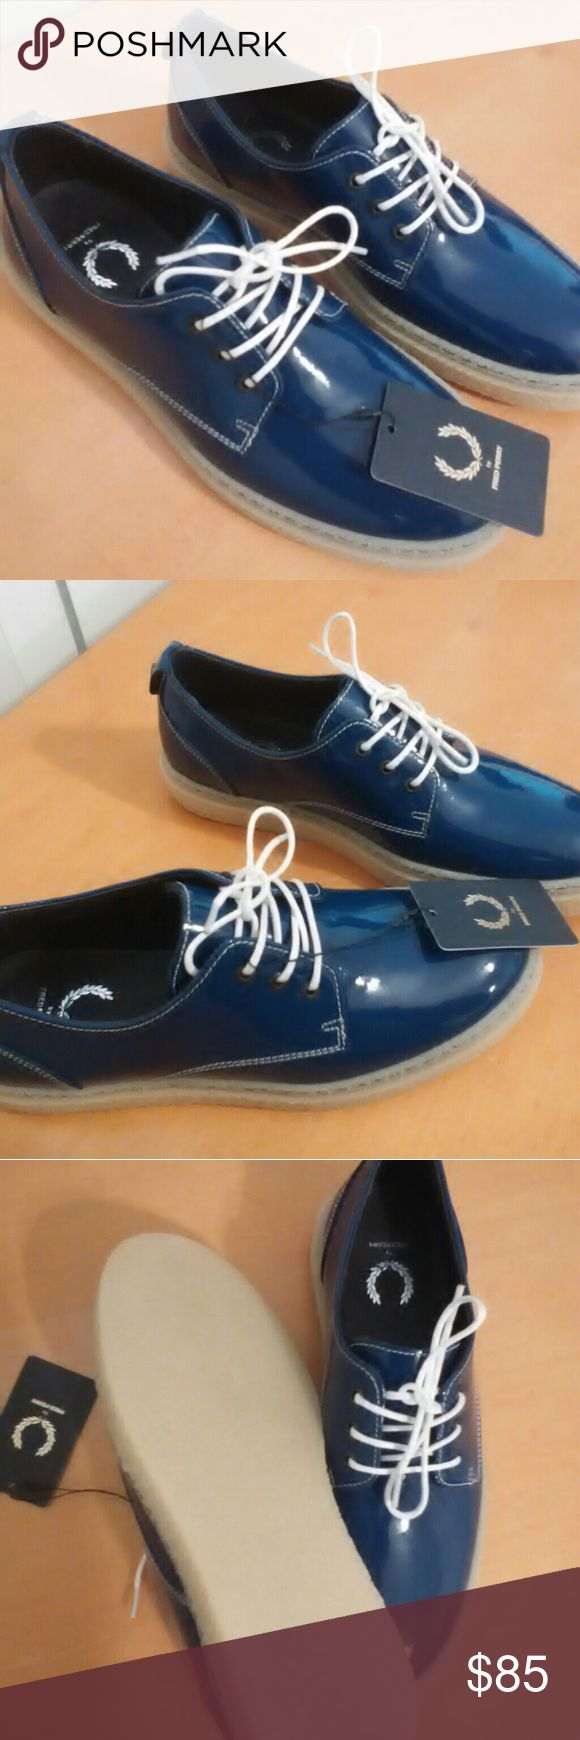 Fred Perry Women's Taylor Leather Lace Up Oxford New with tags Fred Perry leather Oxford lace up. Patent leather vintage sold out rare. Made in Portugal Fred Perry Shoes